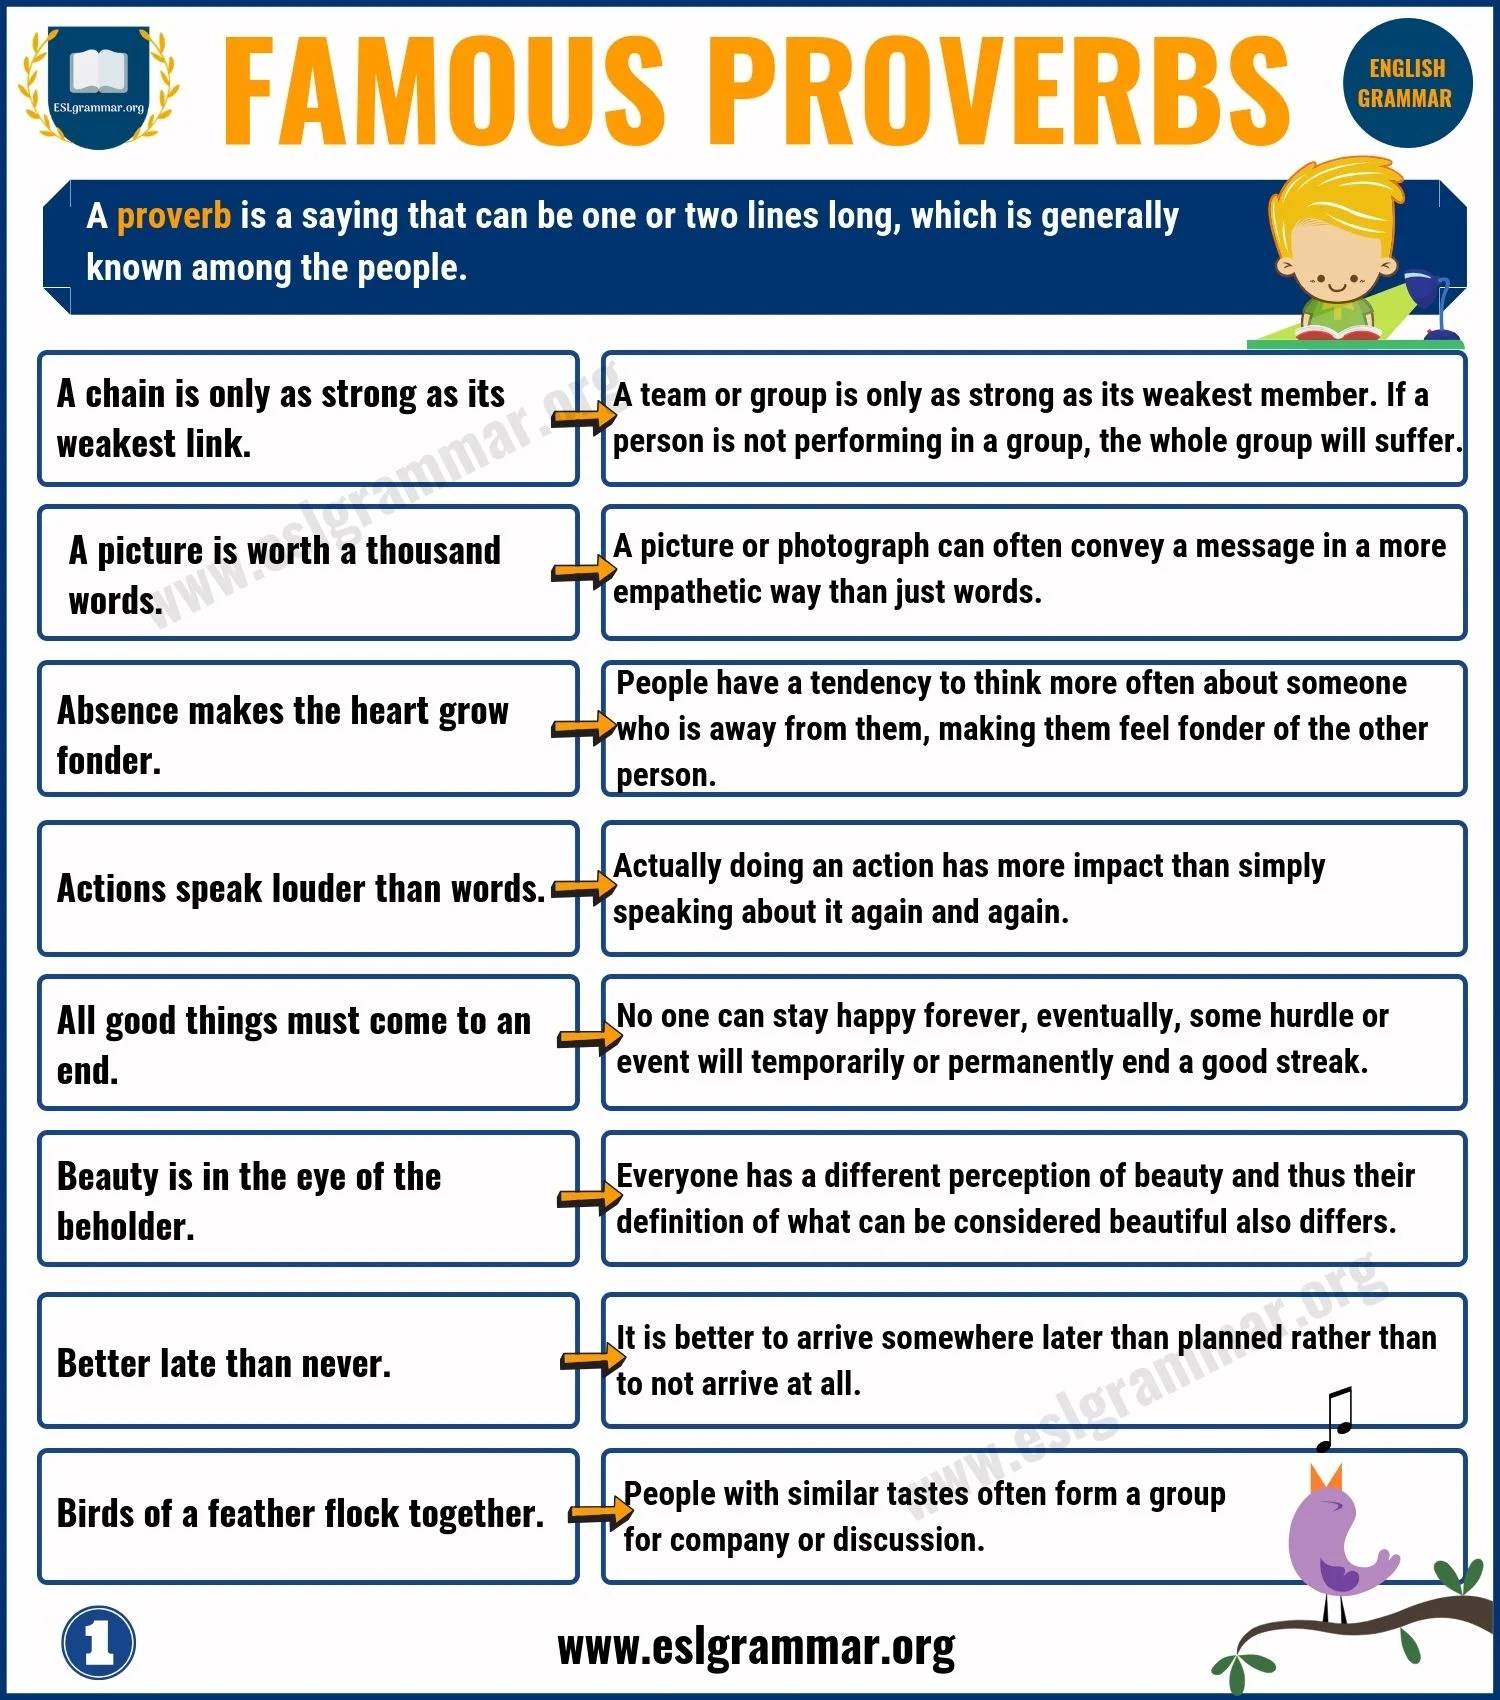 Proverbs List Of 25 Famous Proverbs With Useful Meaning